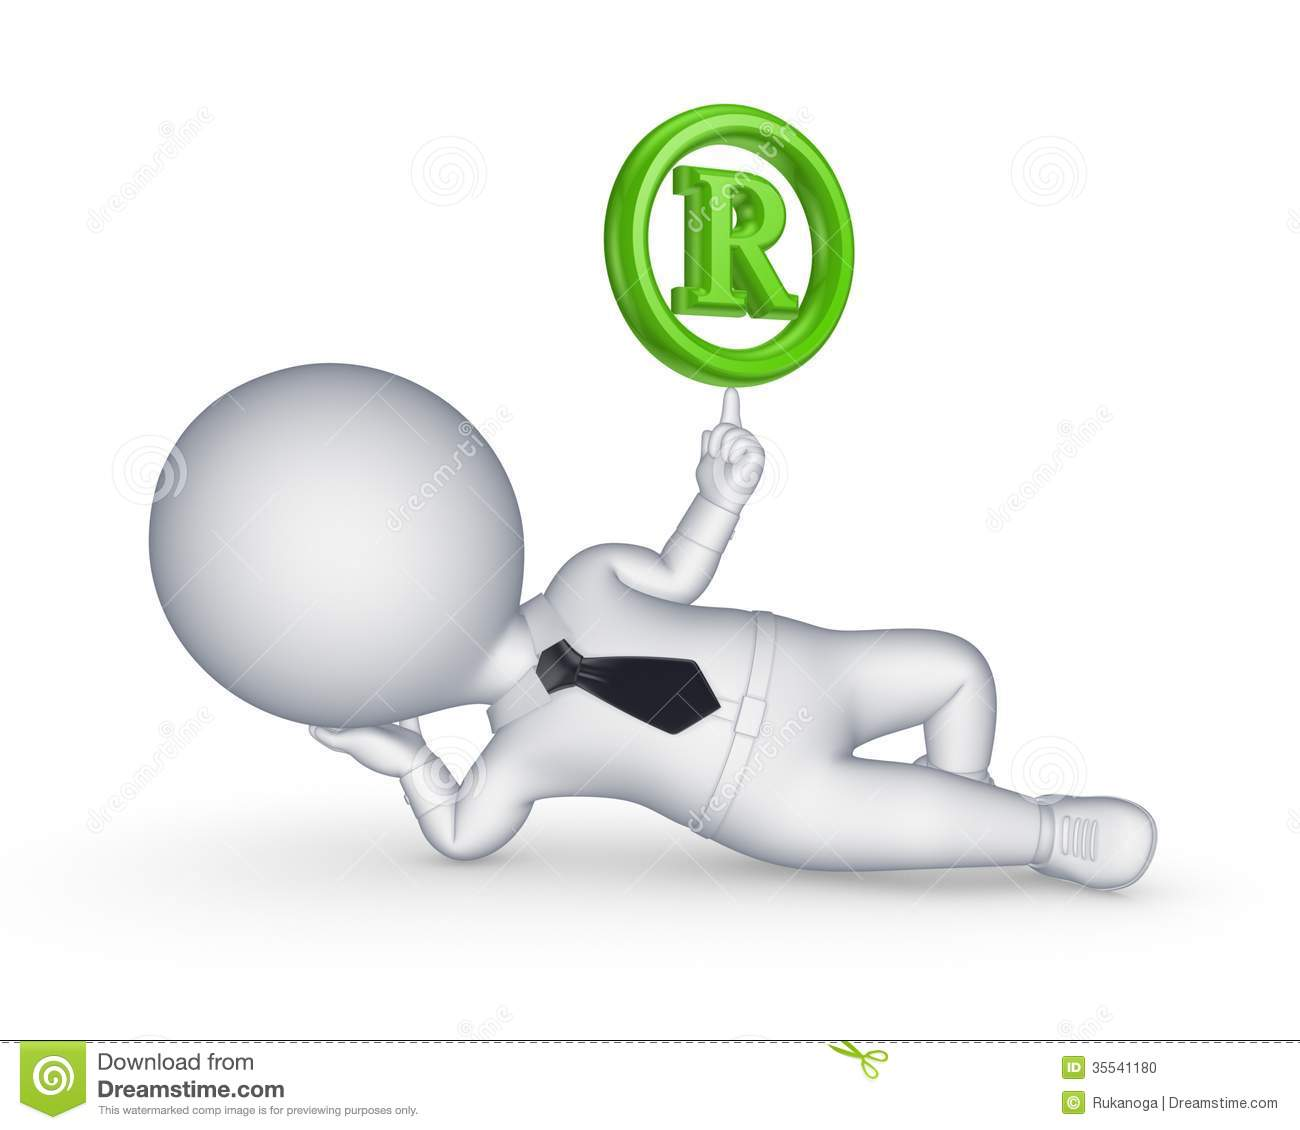 3d small person and copyright symbol stock illustration 3d small person and copyright symbol biocorpaavc